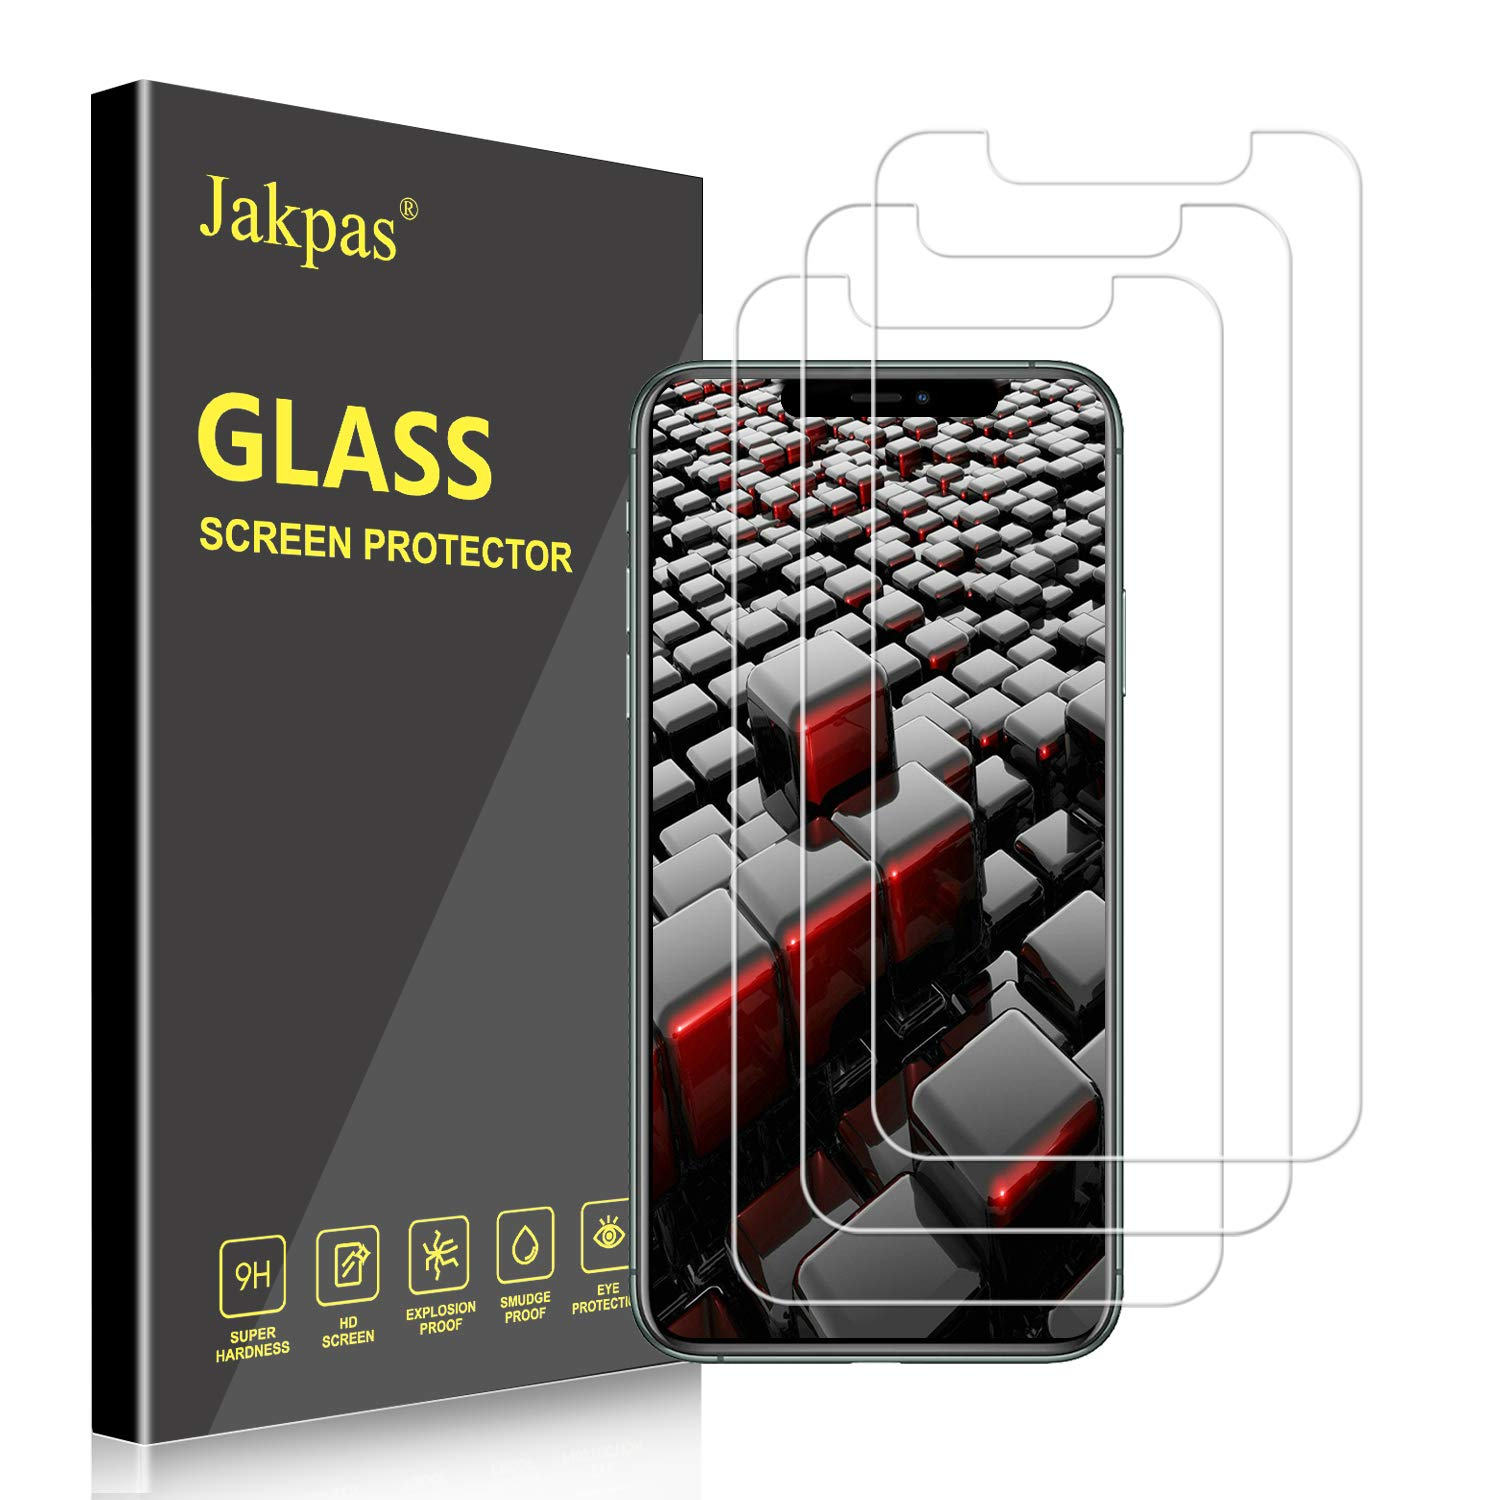 Jakpas Screen Protector for iPhone 11 Pro Max (6.5''),iPhone Xs Max (6.5 inch),[3 Pack] Tempered Glass Screen Protector [Bubble Free] [Anti-Scratch] [High Responsive] Work Most Case for iPhone Xs Max